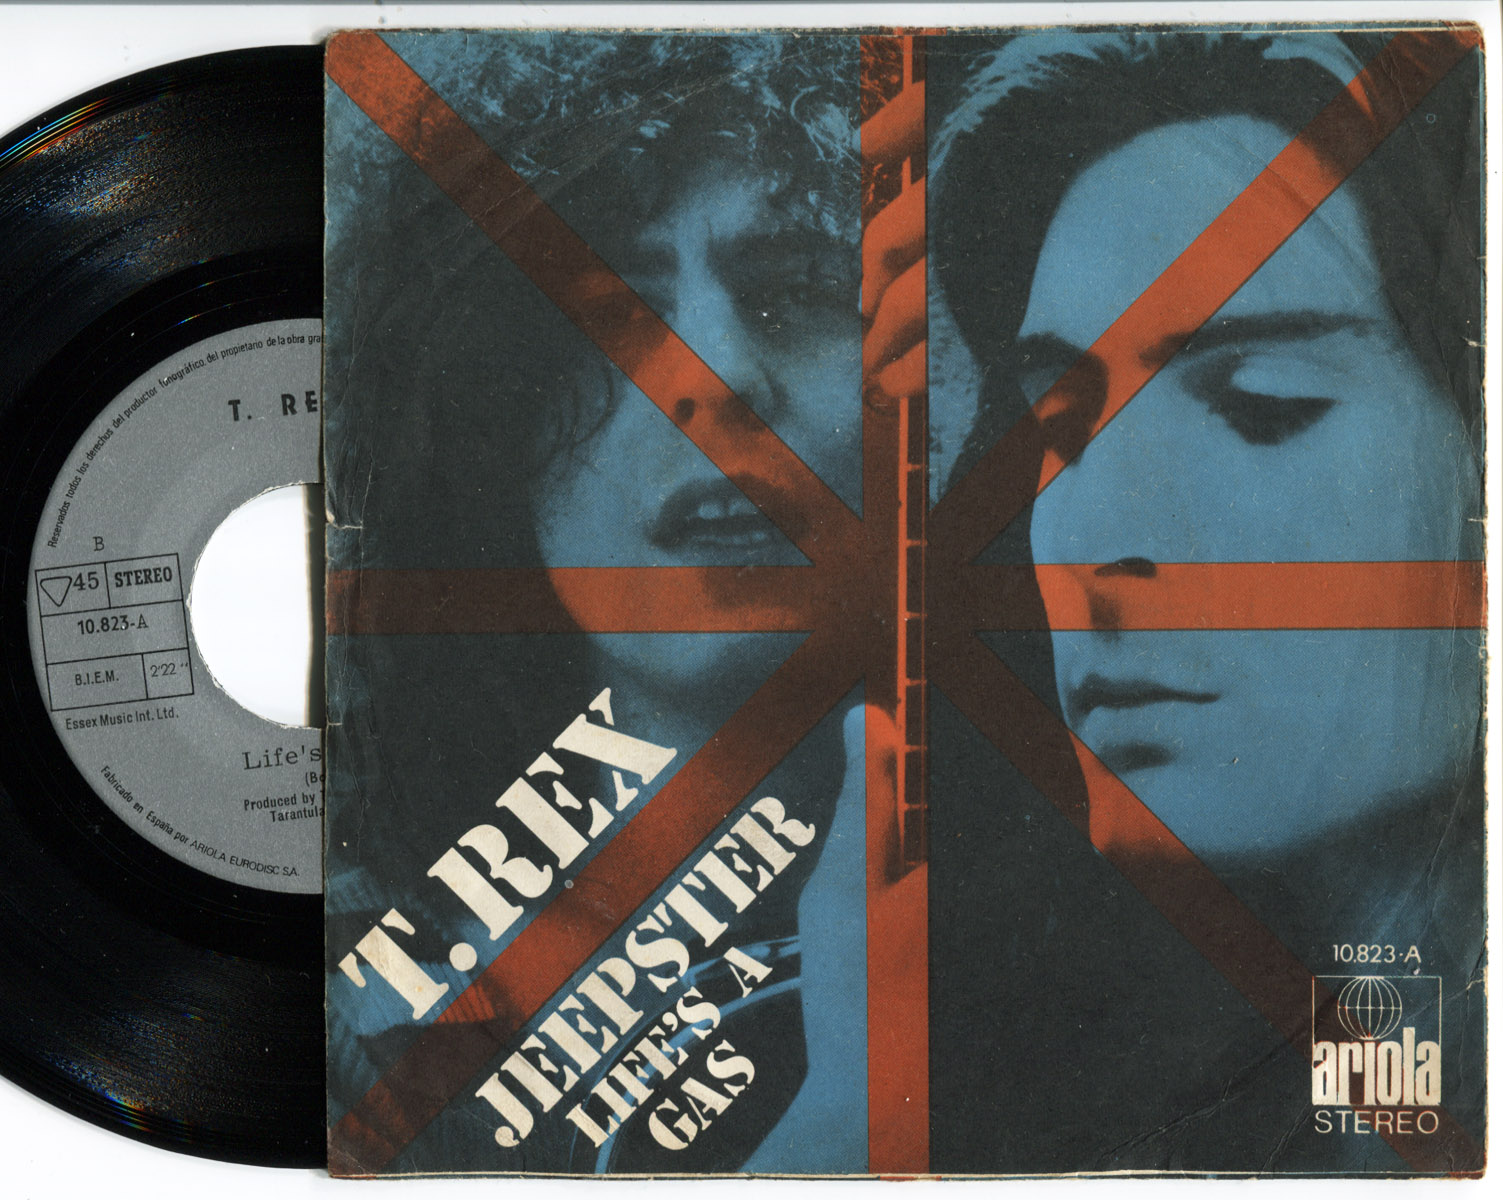 T.Rex jeepster / life's a gas